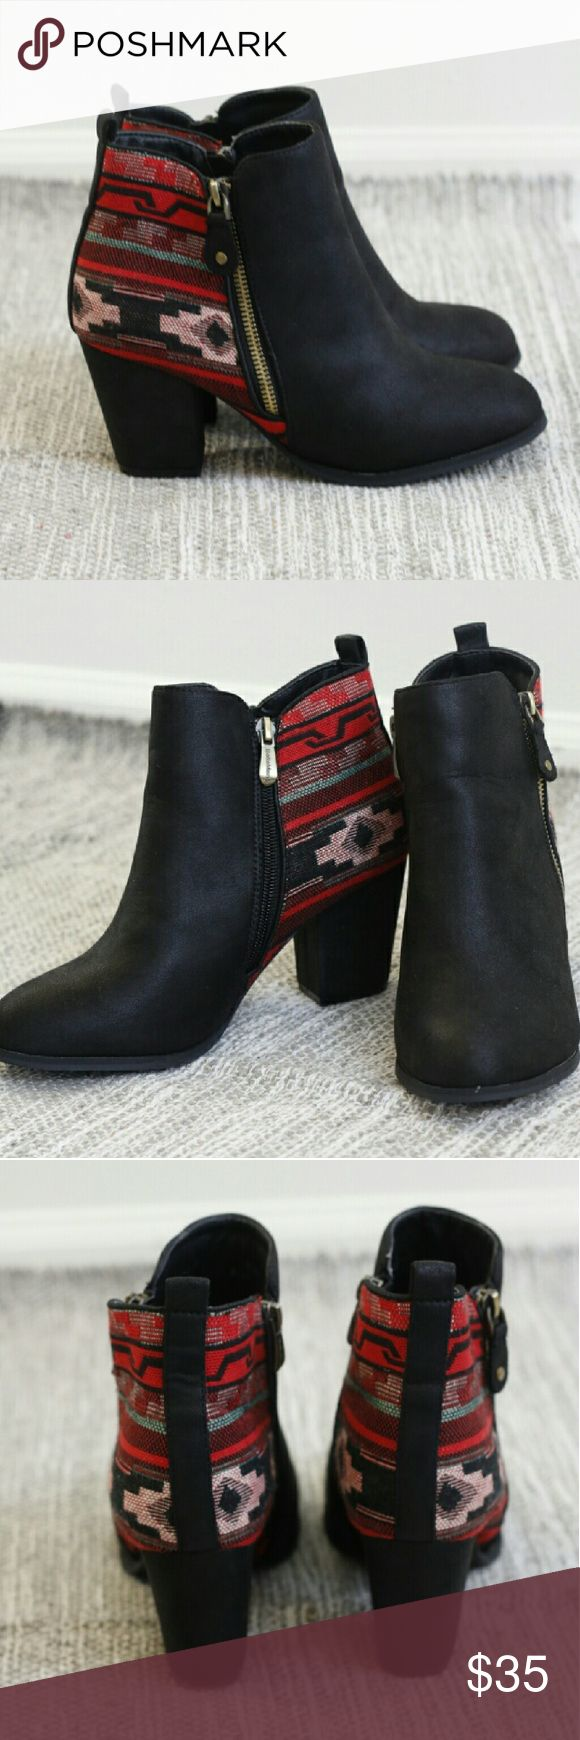 Aztec boots I'm so sad to sell these but they are a little snug for me. So cute. Worn once to see of I could bare them. Excellent condition. Fit closer to an 8.5 Free People for exposure Free People Shoes Heeled Boots